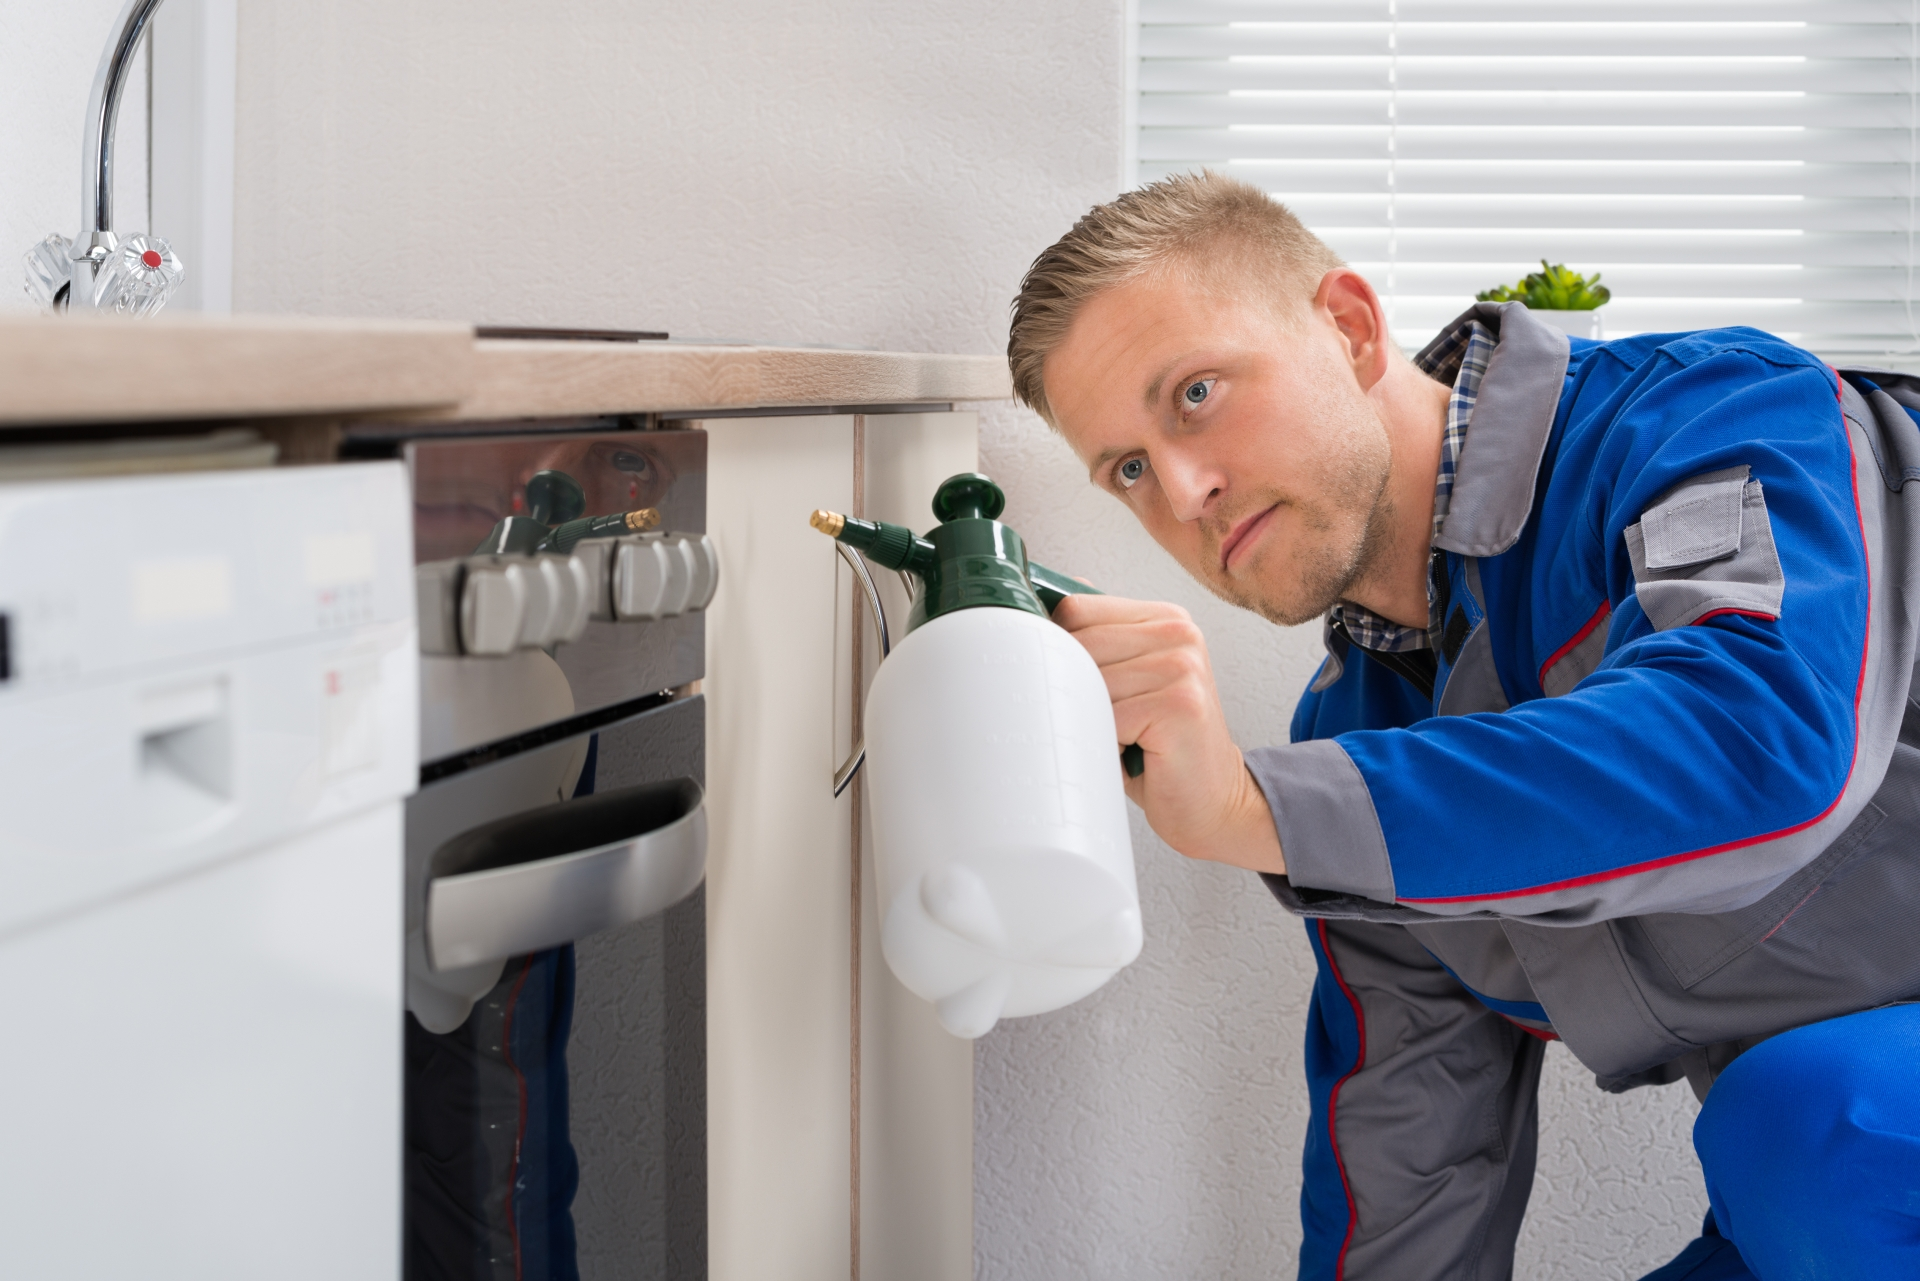 Pest Inspection, Pest Control in South Kensington, SW7. Call Now 020 8166 9746